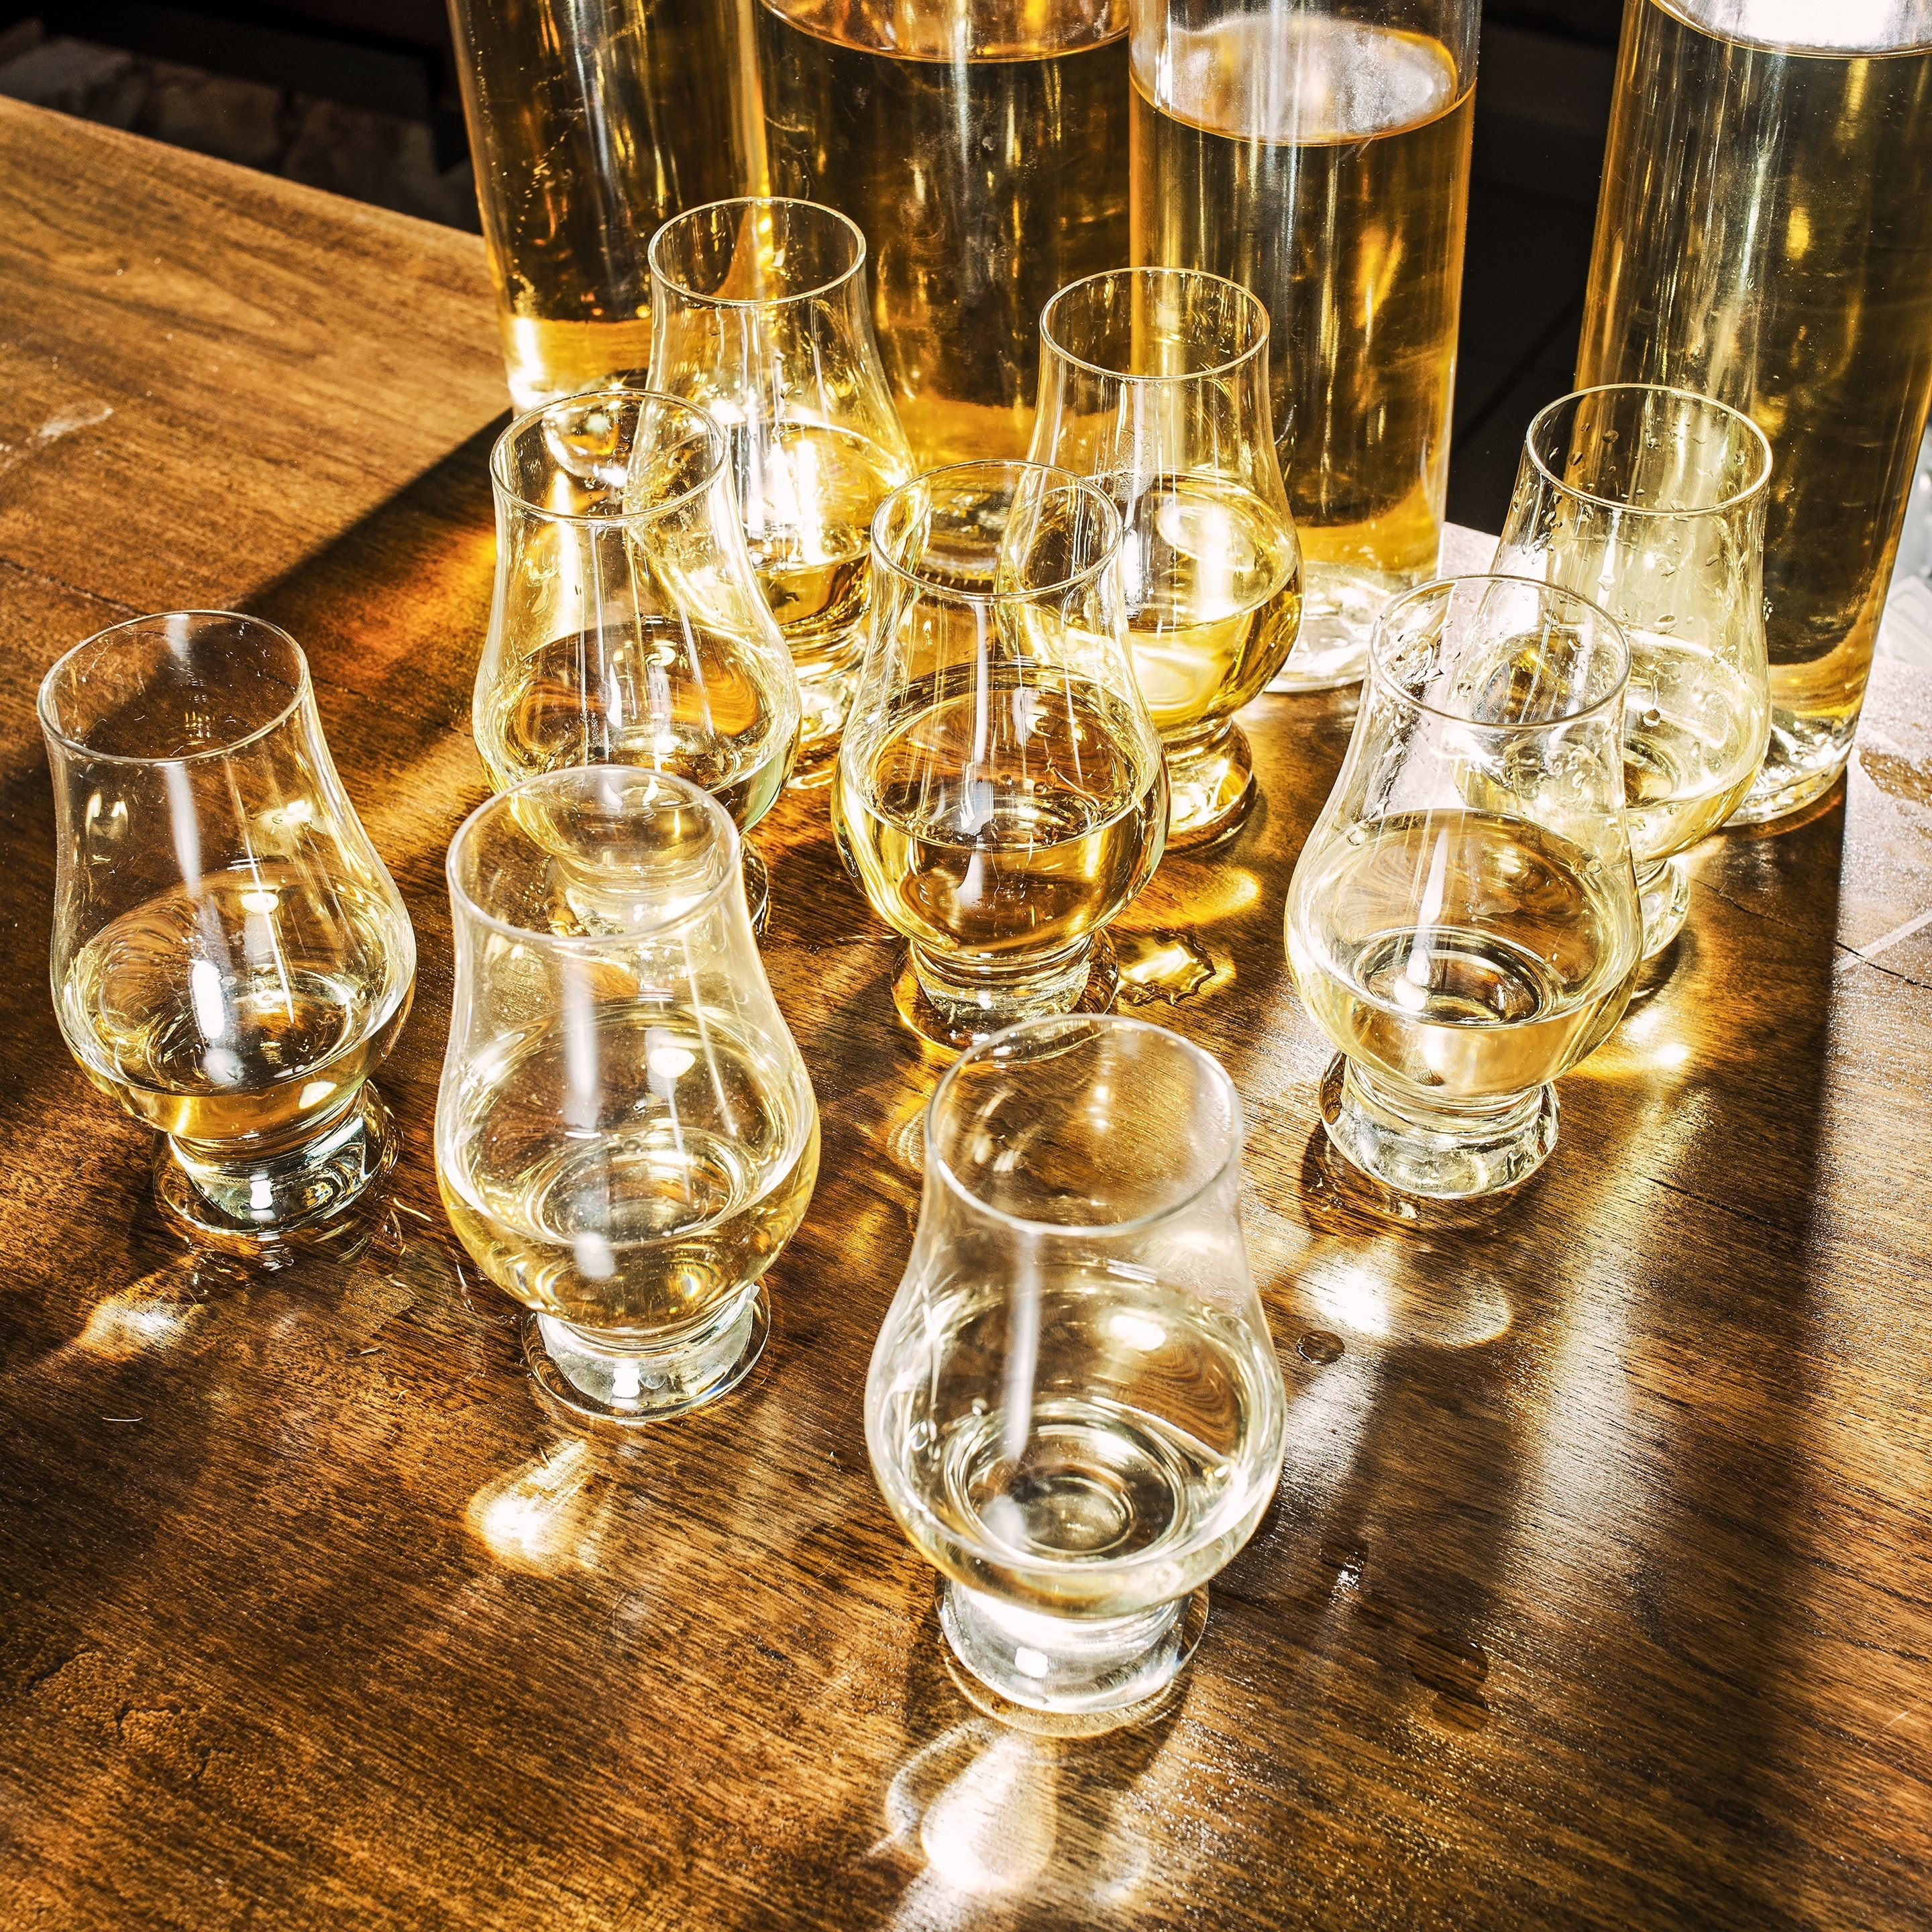 Glasses of clairin ready for tasting